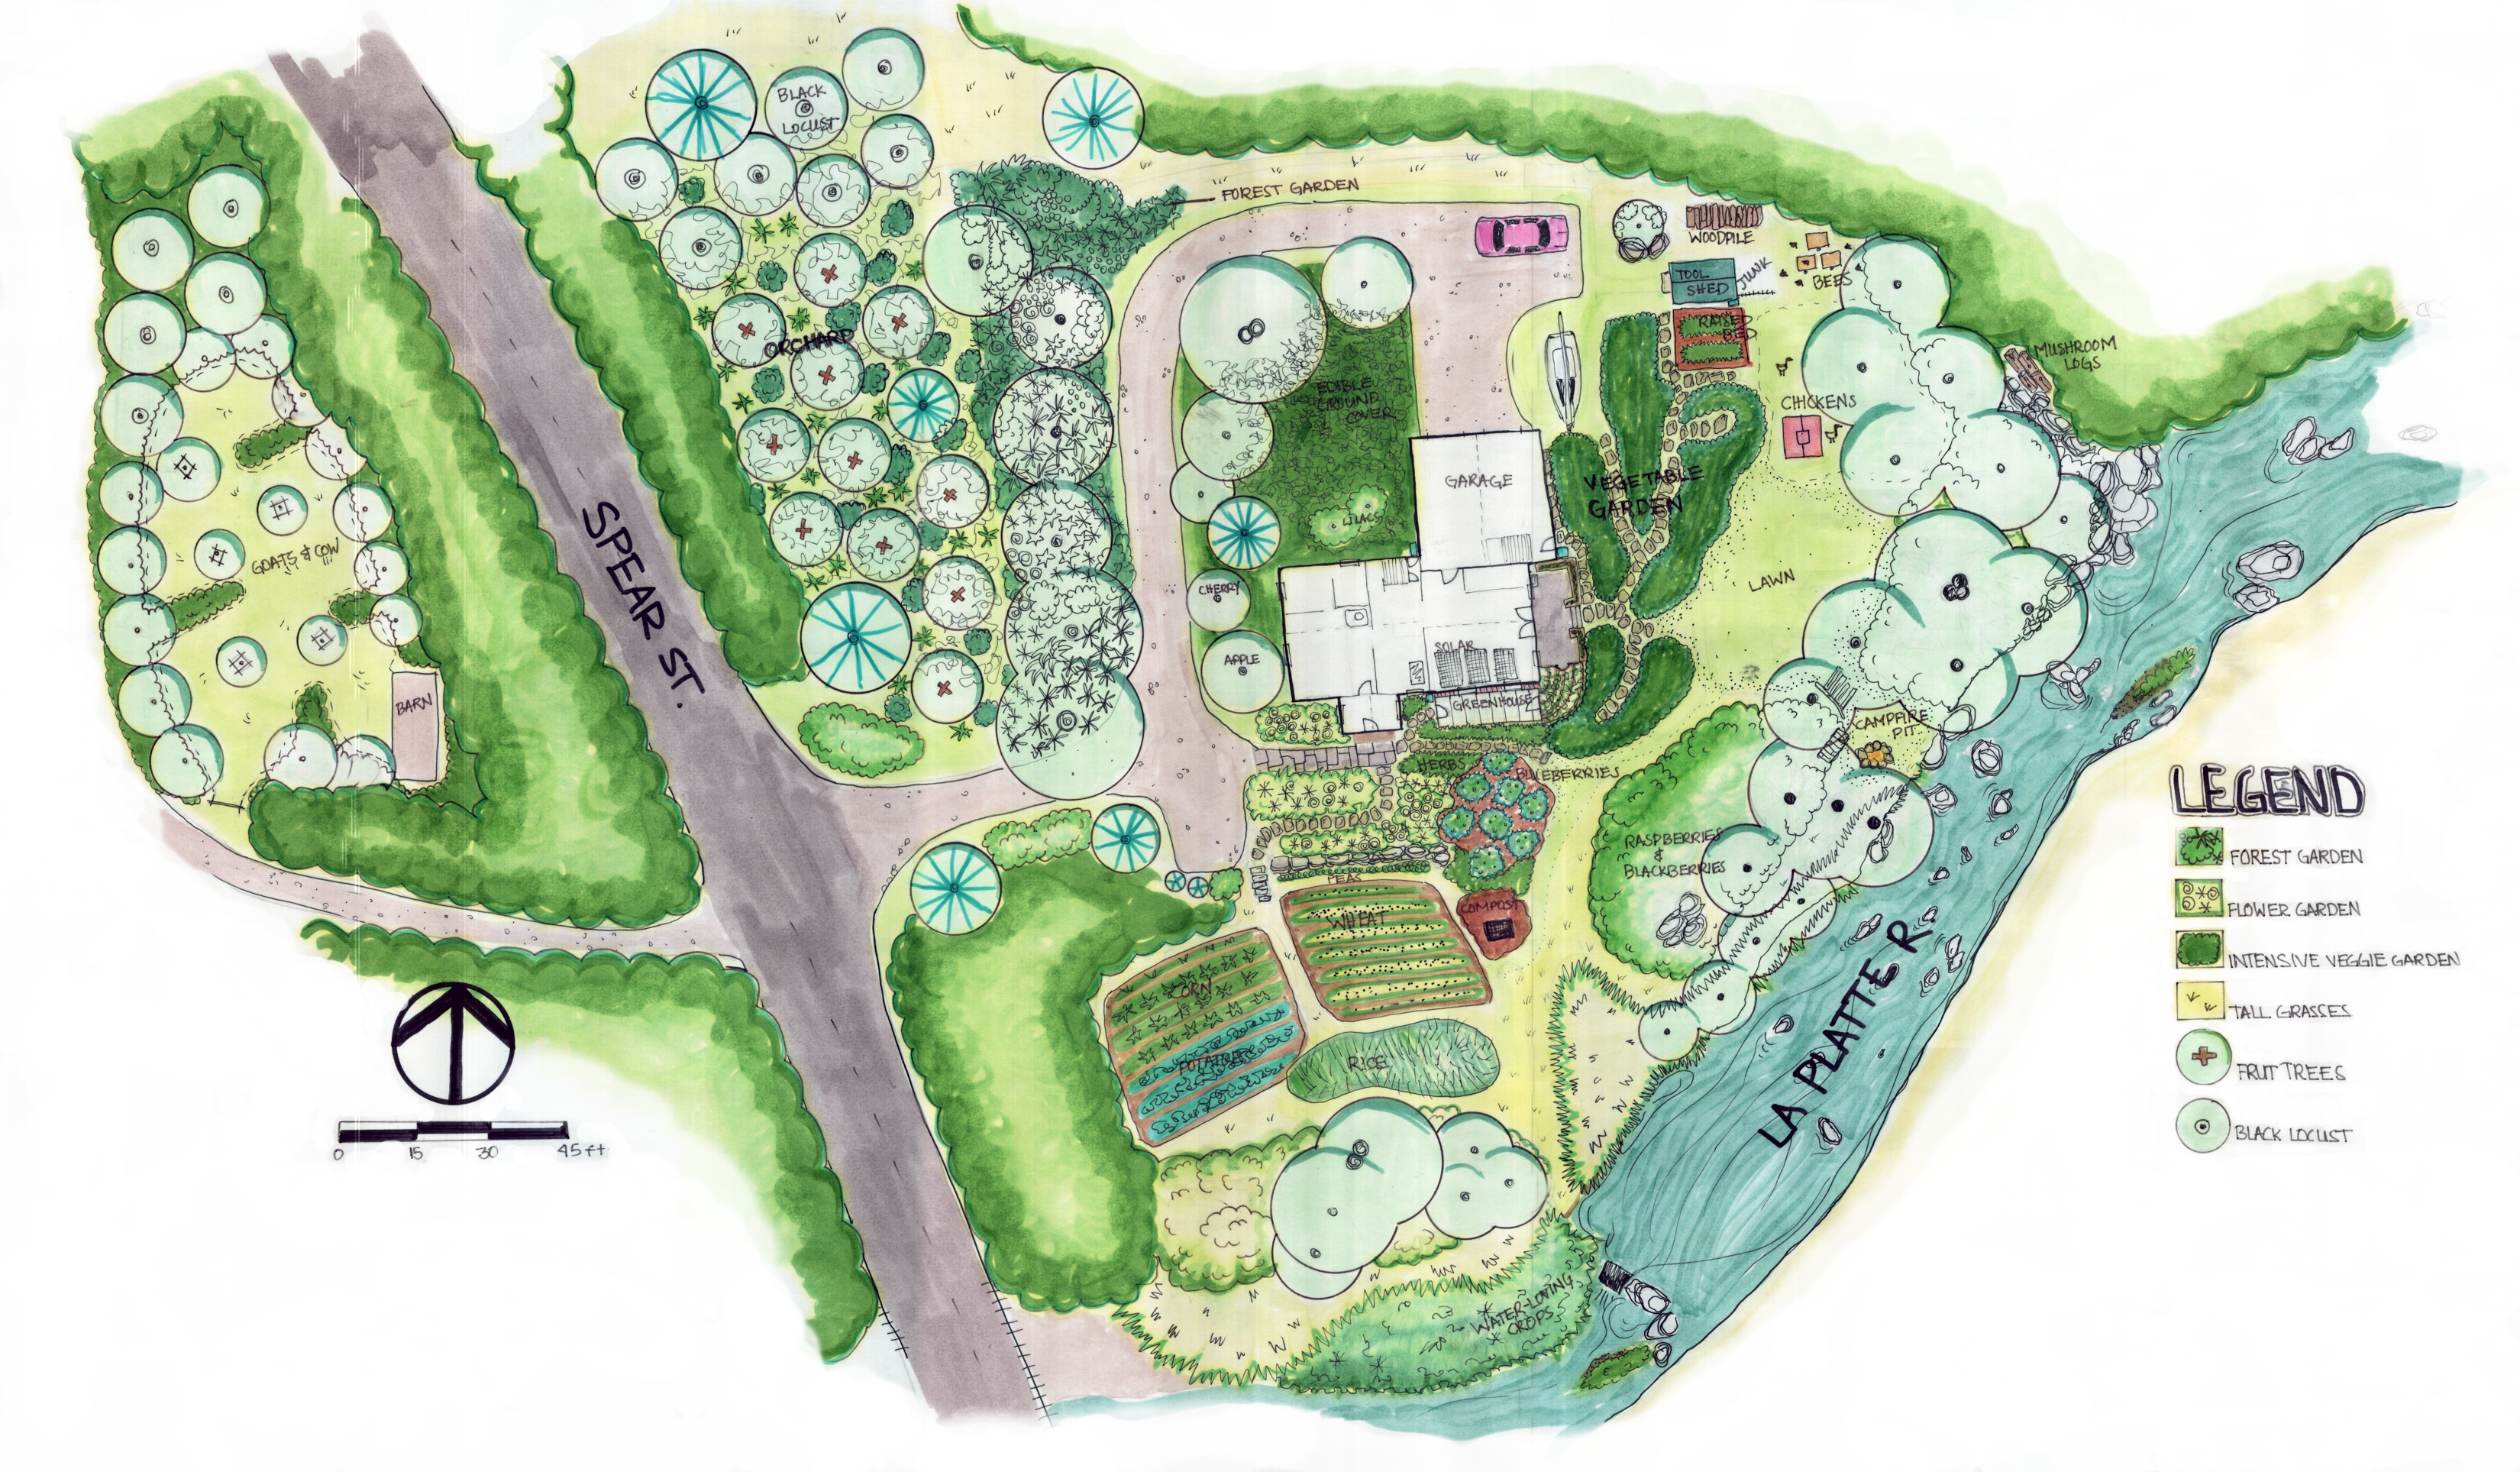 Permaculture garden design and forests on pinterest for Permaculture garden designs